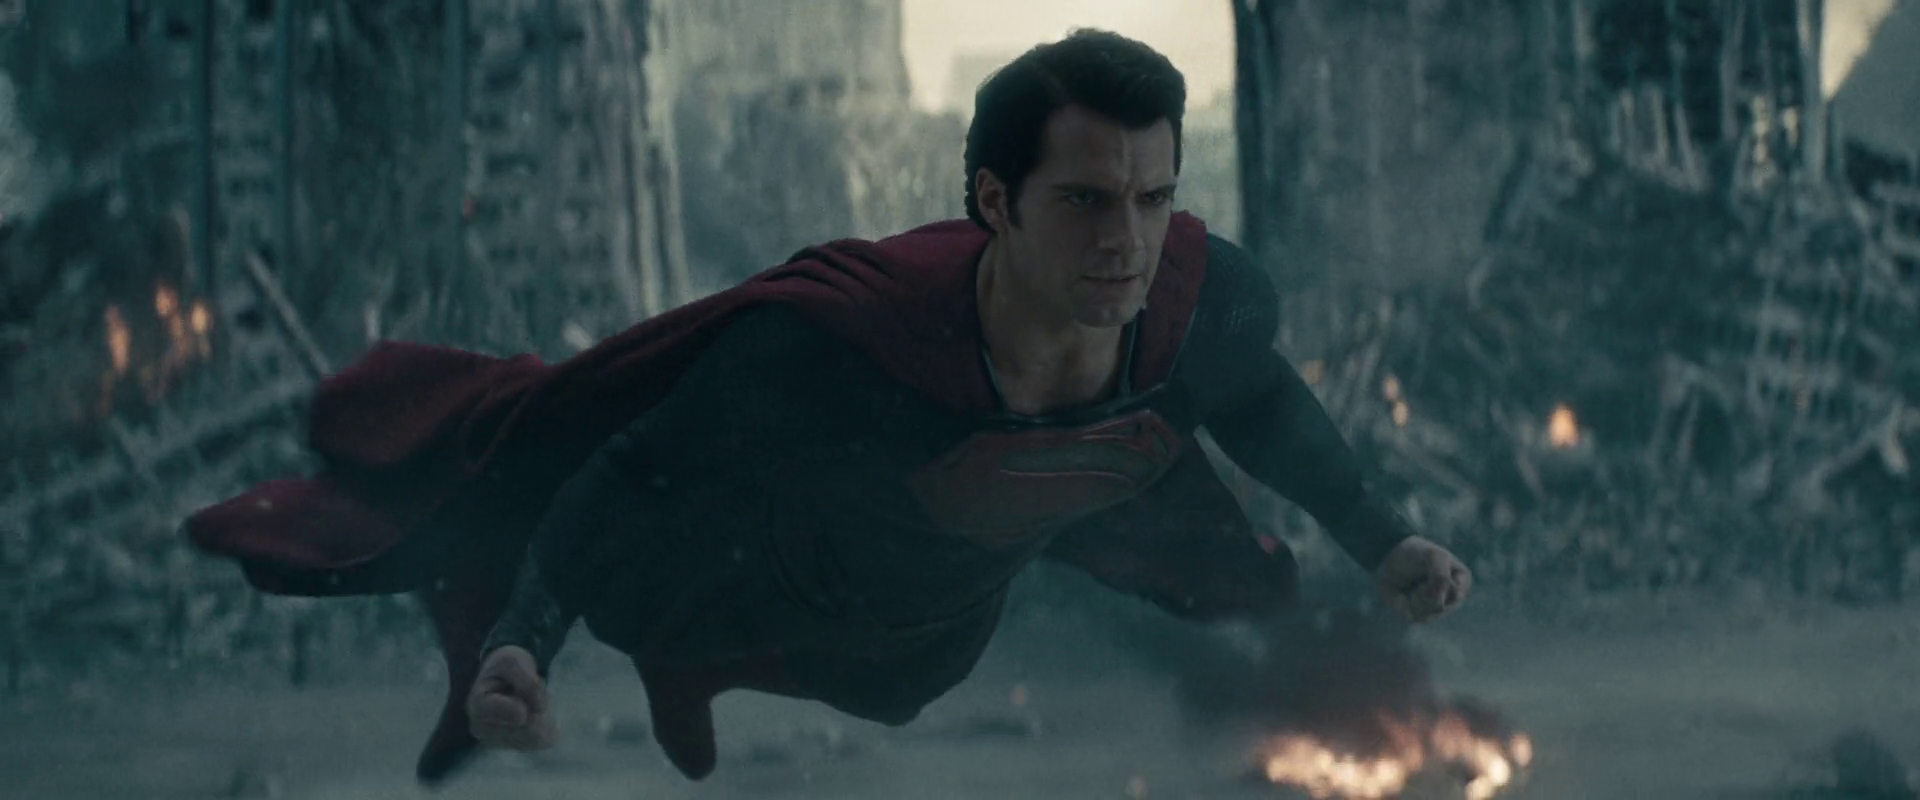 File:Man-of-steel3.png